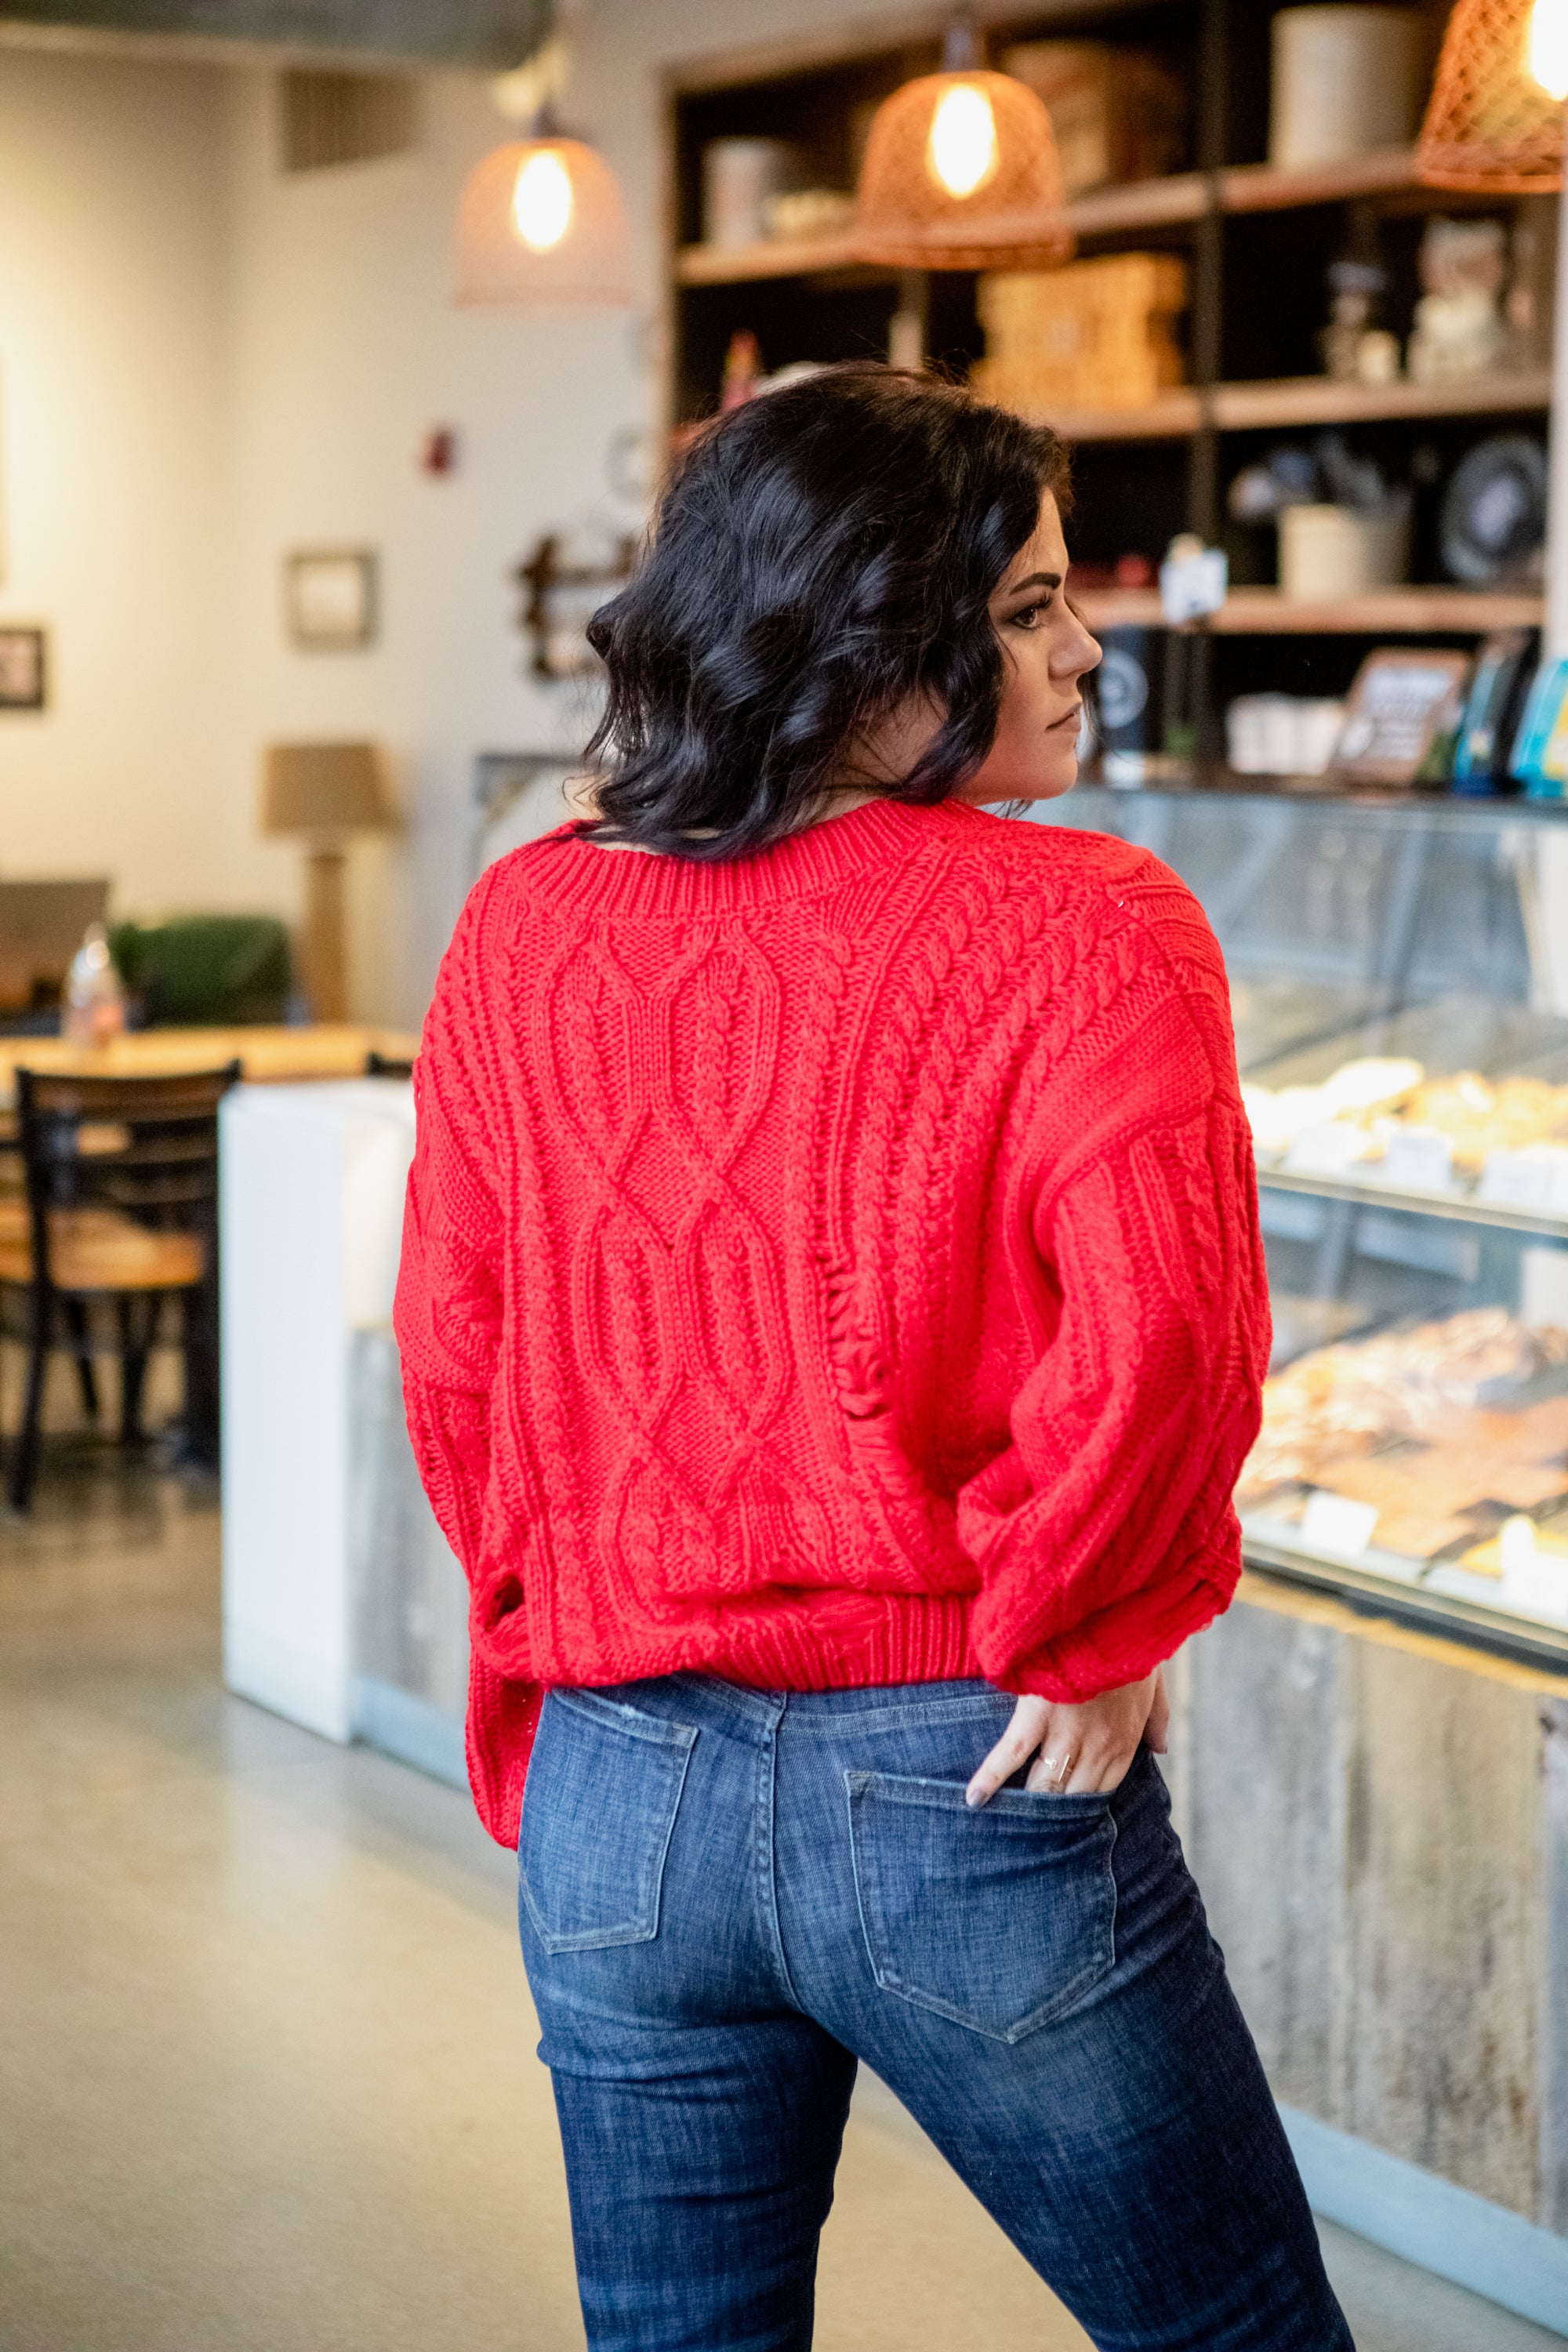 CAN'T BELIEVE KNIT RED SWEATER